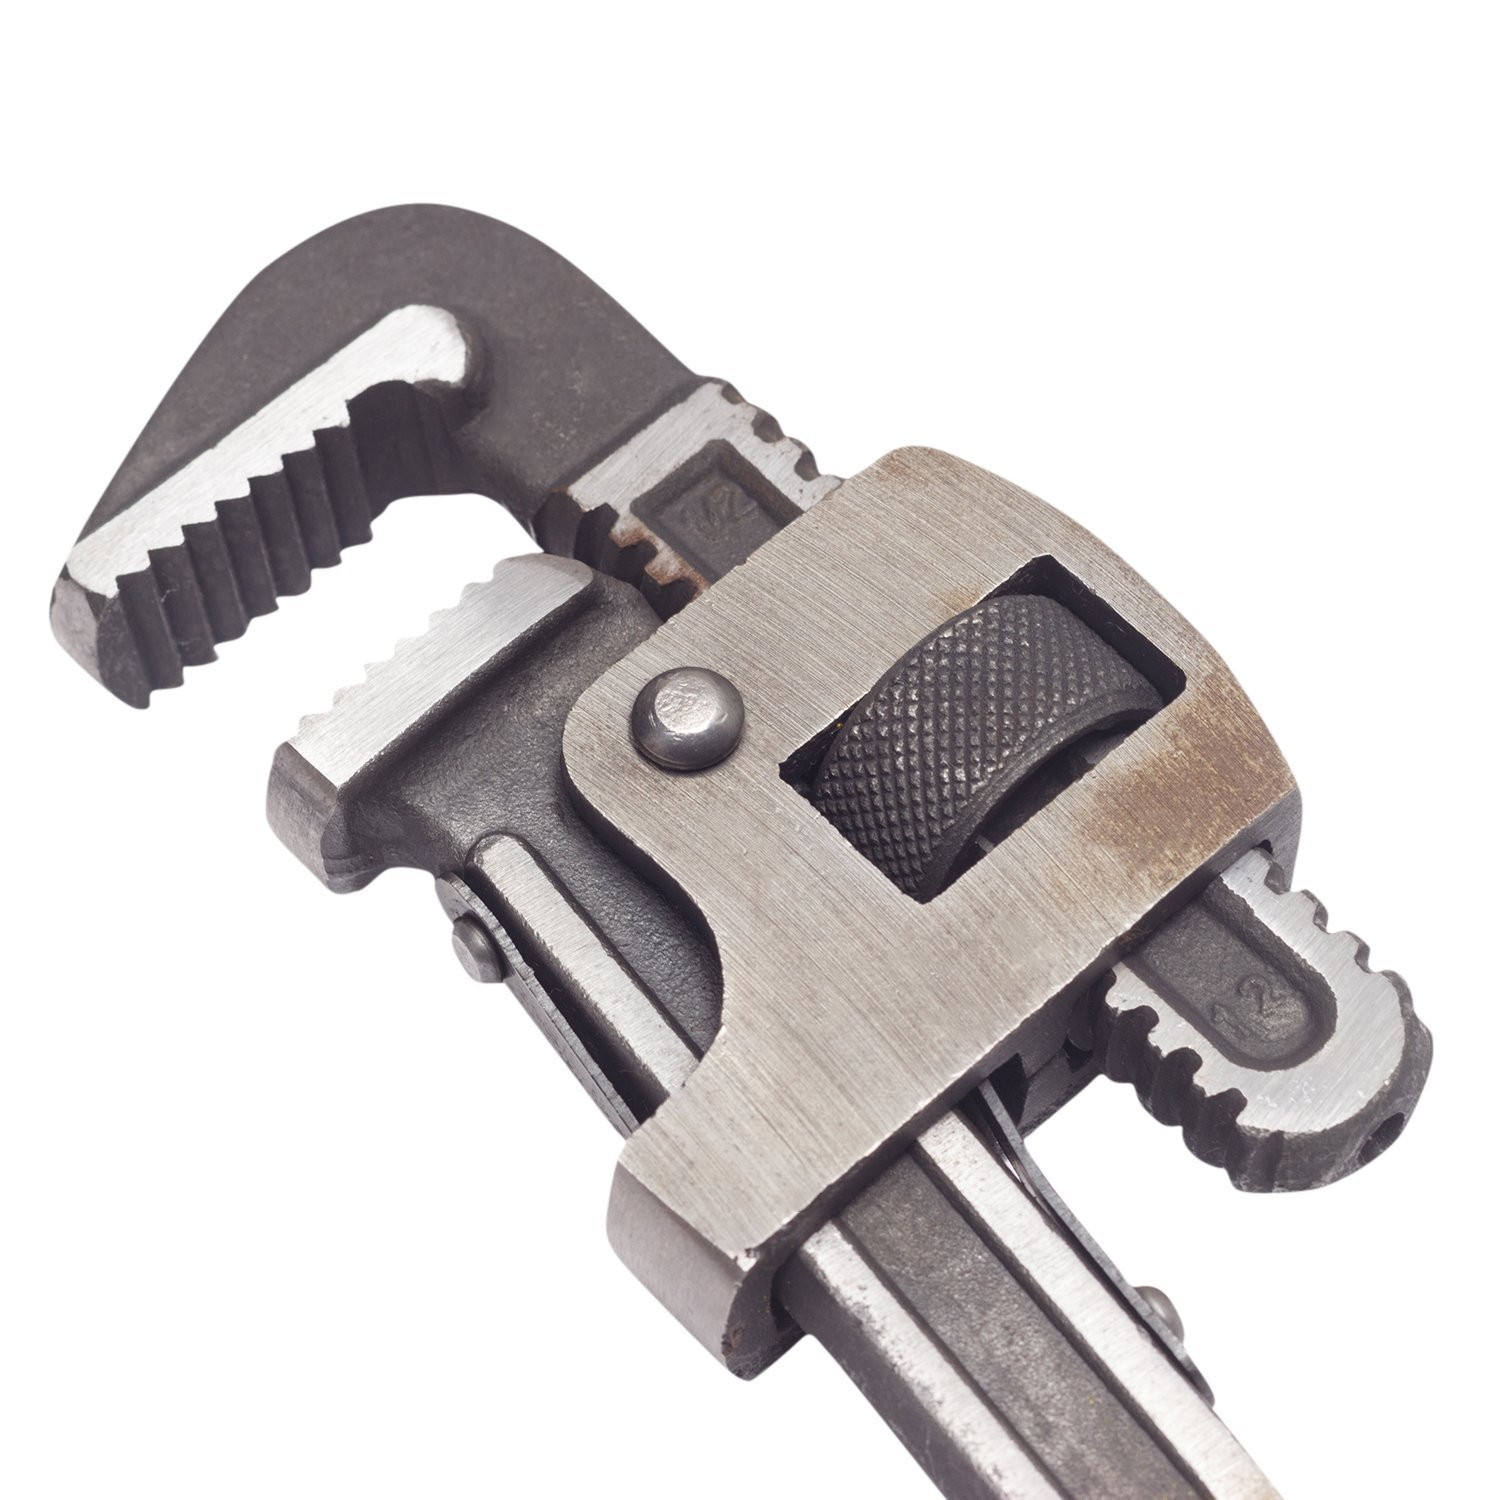 Stanley 71642 Stilson Type Pipe Wrench: Amazon.in: Home Improvement